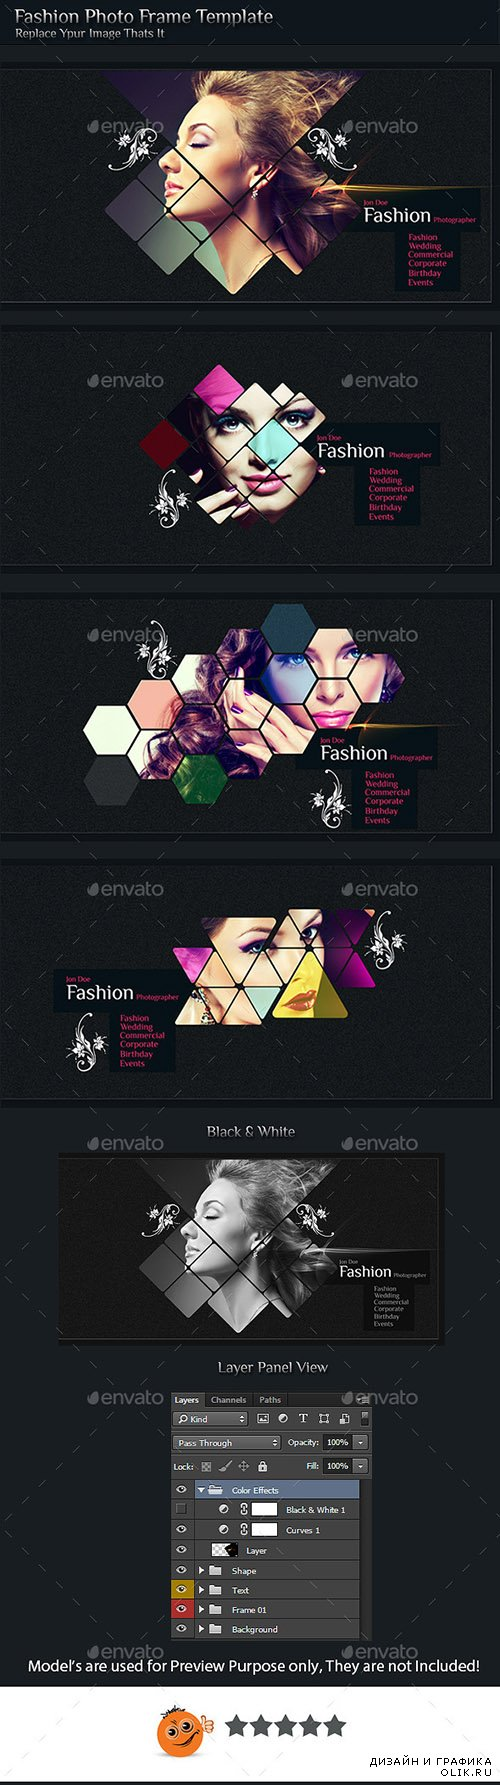 GraphicRiver - Fashion Photo Frame Template 10683145